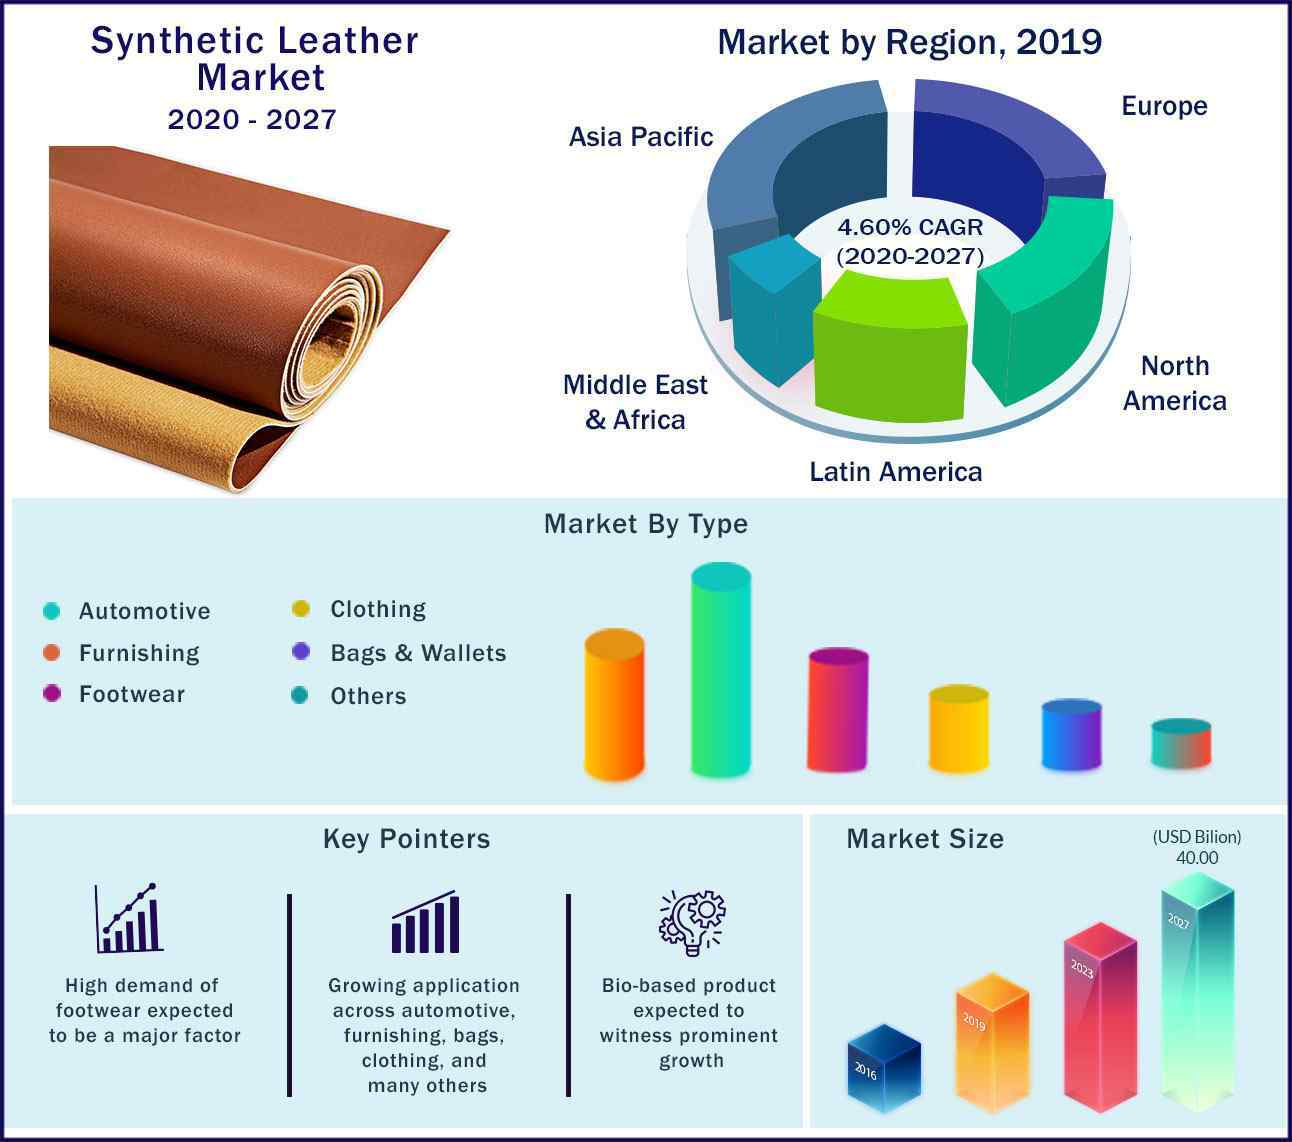 Global Synthetic Leather Market 2020 to 2027